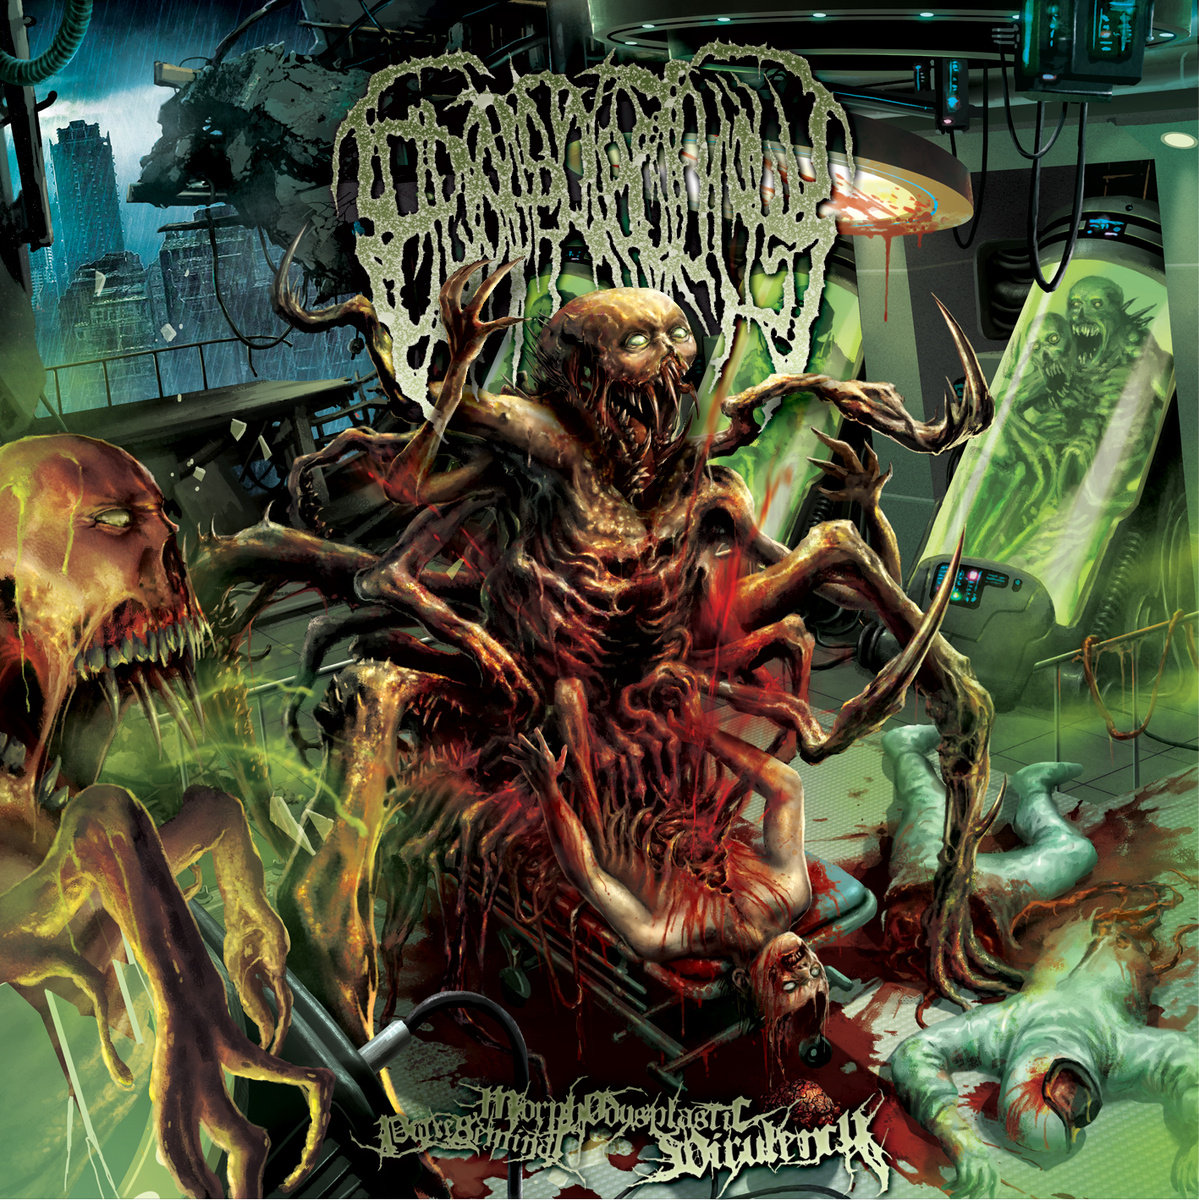 epicardiectomy abhorrent stench of posthumous gastro rectal desecration